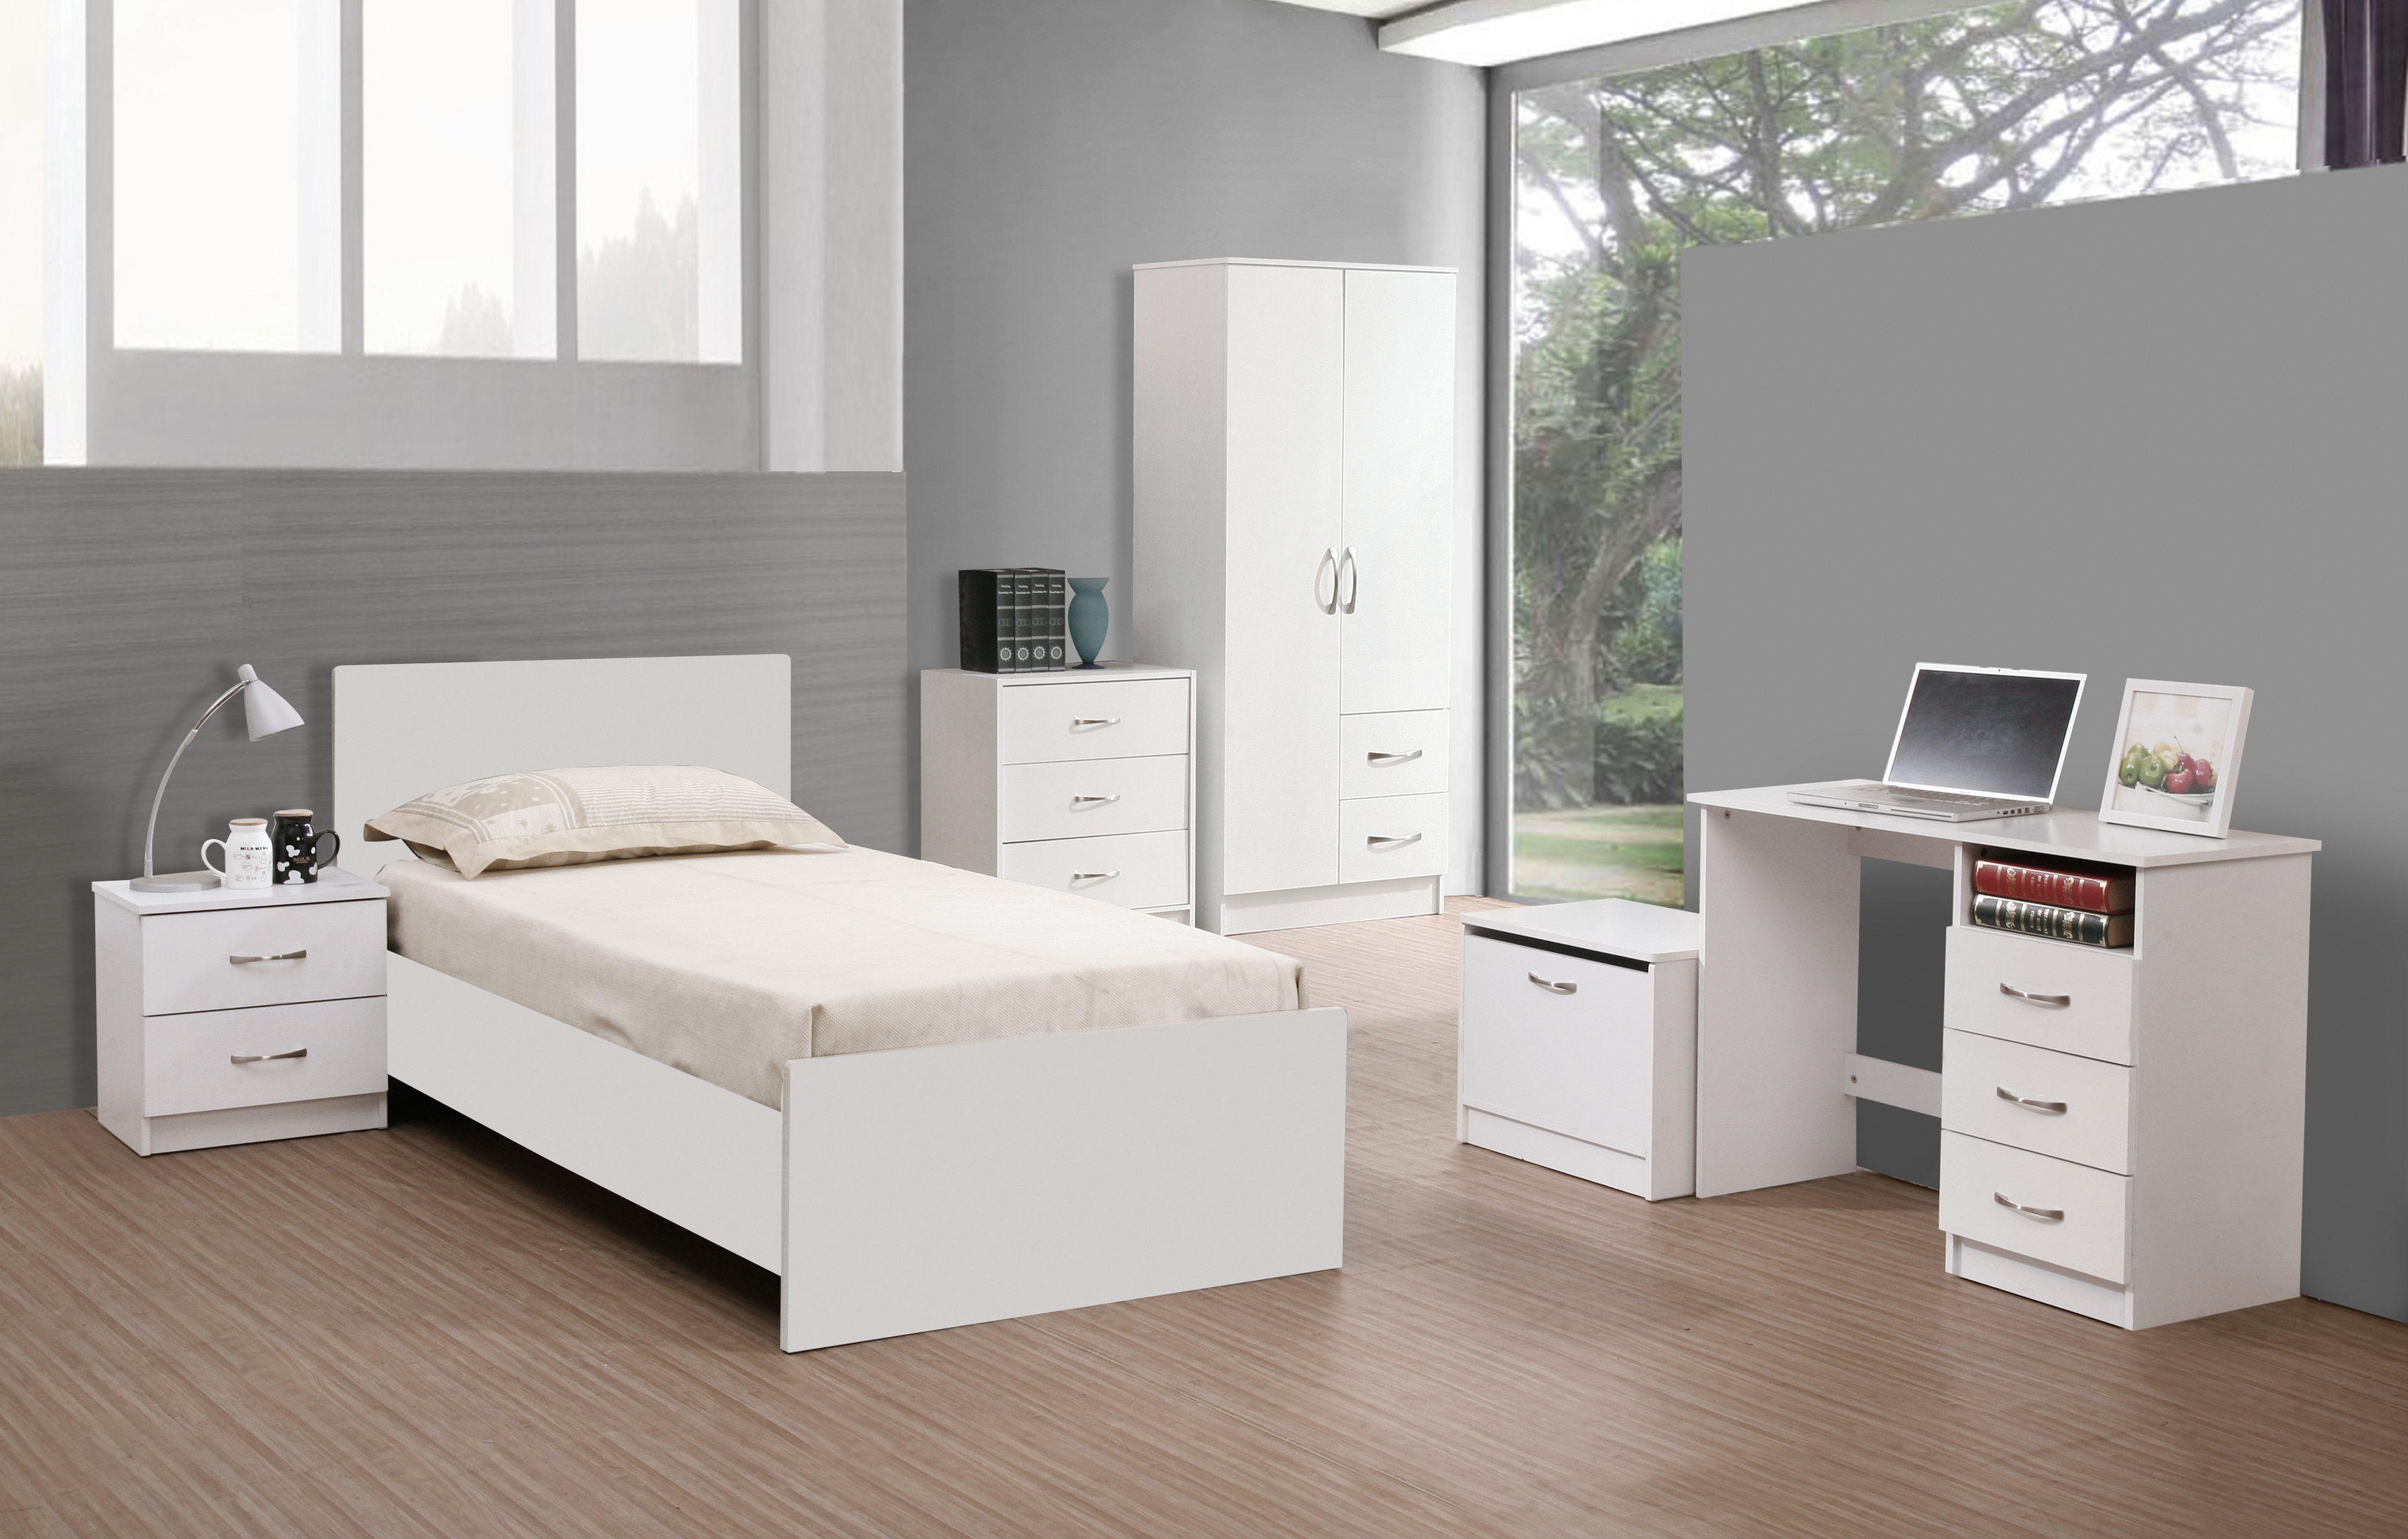 15 top white bedroom furniture might be suitable for your room hgnv com White wooden bedroom furniture sets